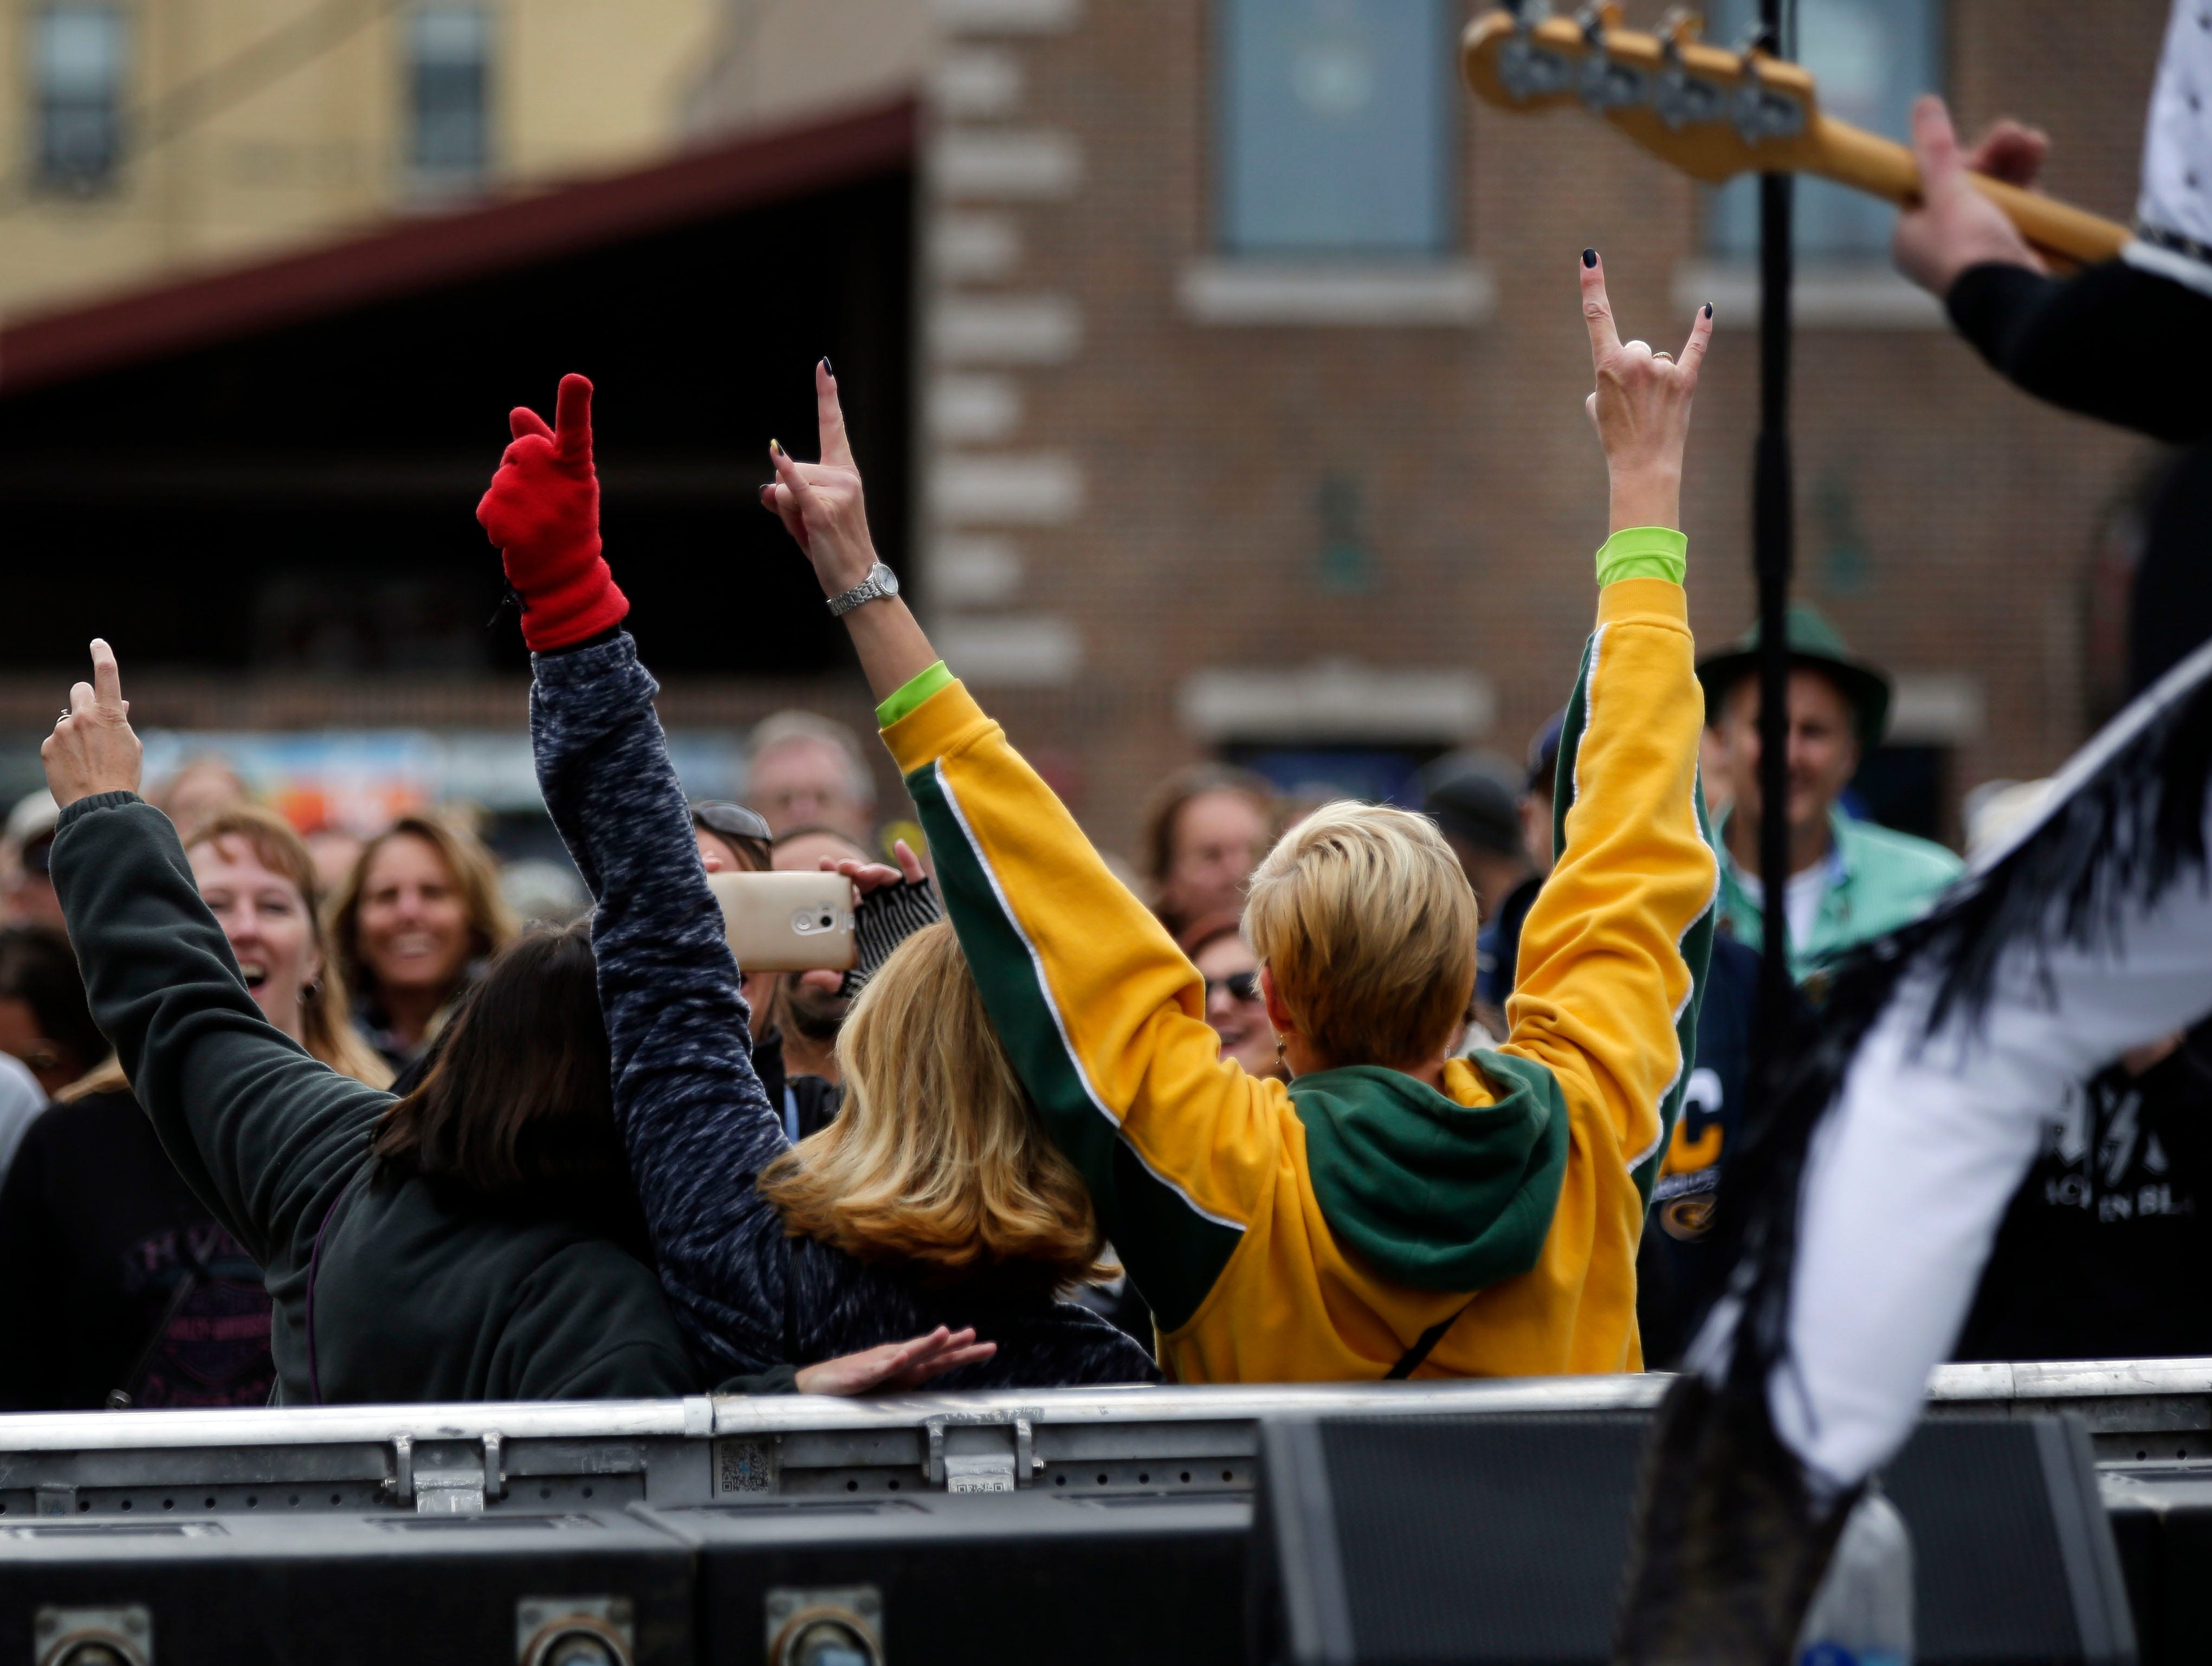 Time for photos with the musicians as The Glam Band performs during Octoberfest 2018 Saturday, September 29, 2018, in downtown Appleton, Wis.Ron Page/USA TODAY NETWORK-Wisconsin